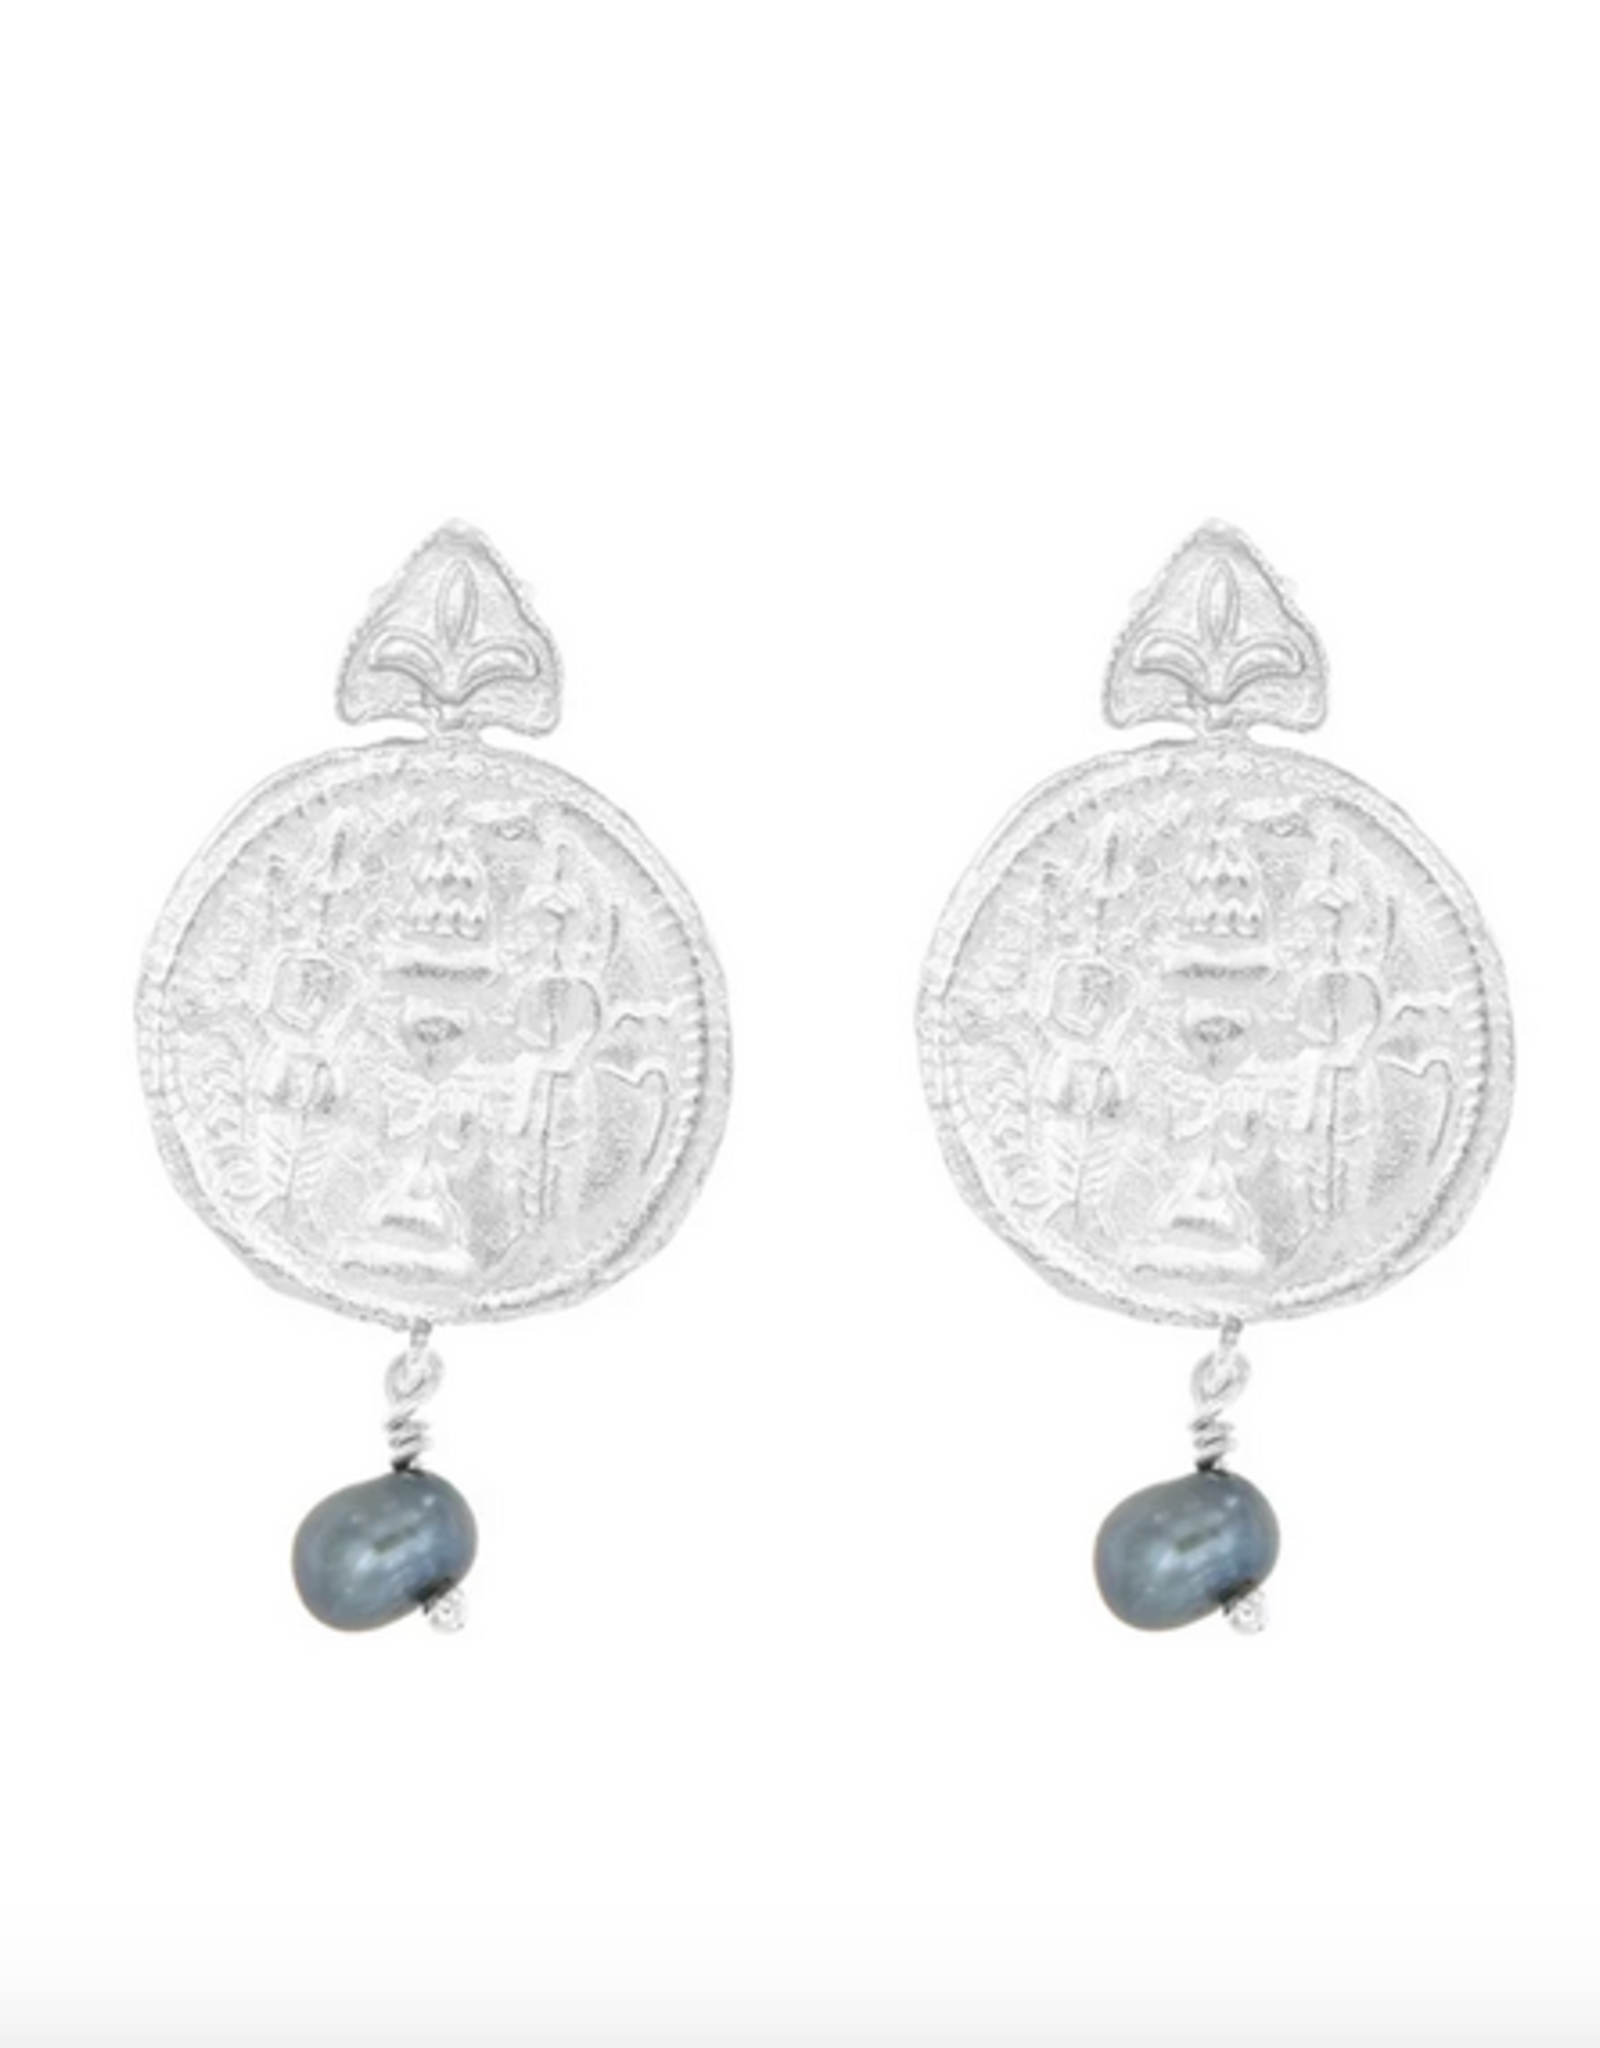 Cleopatra's Bling Cleopatra's Bling Daria earrings silver